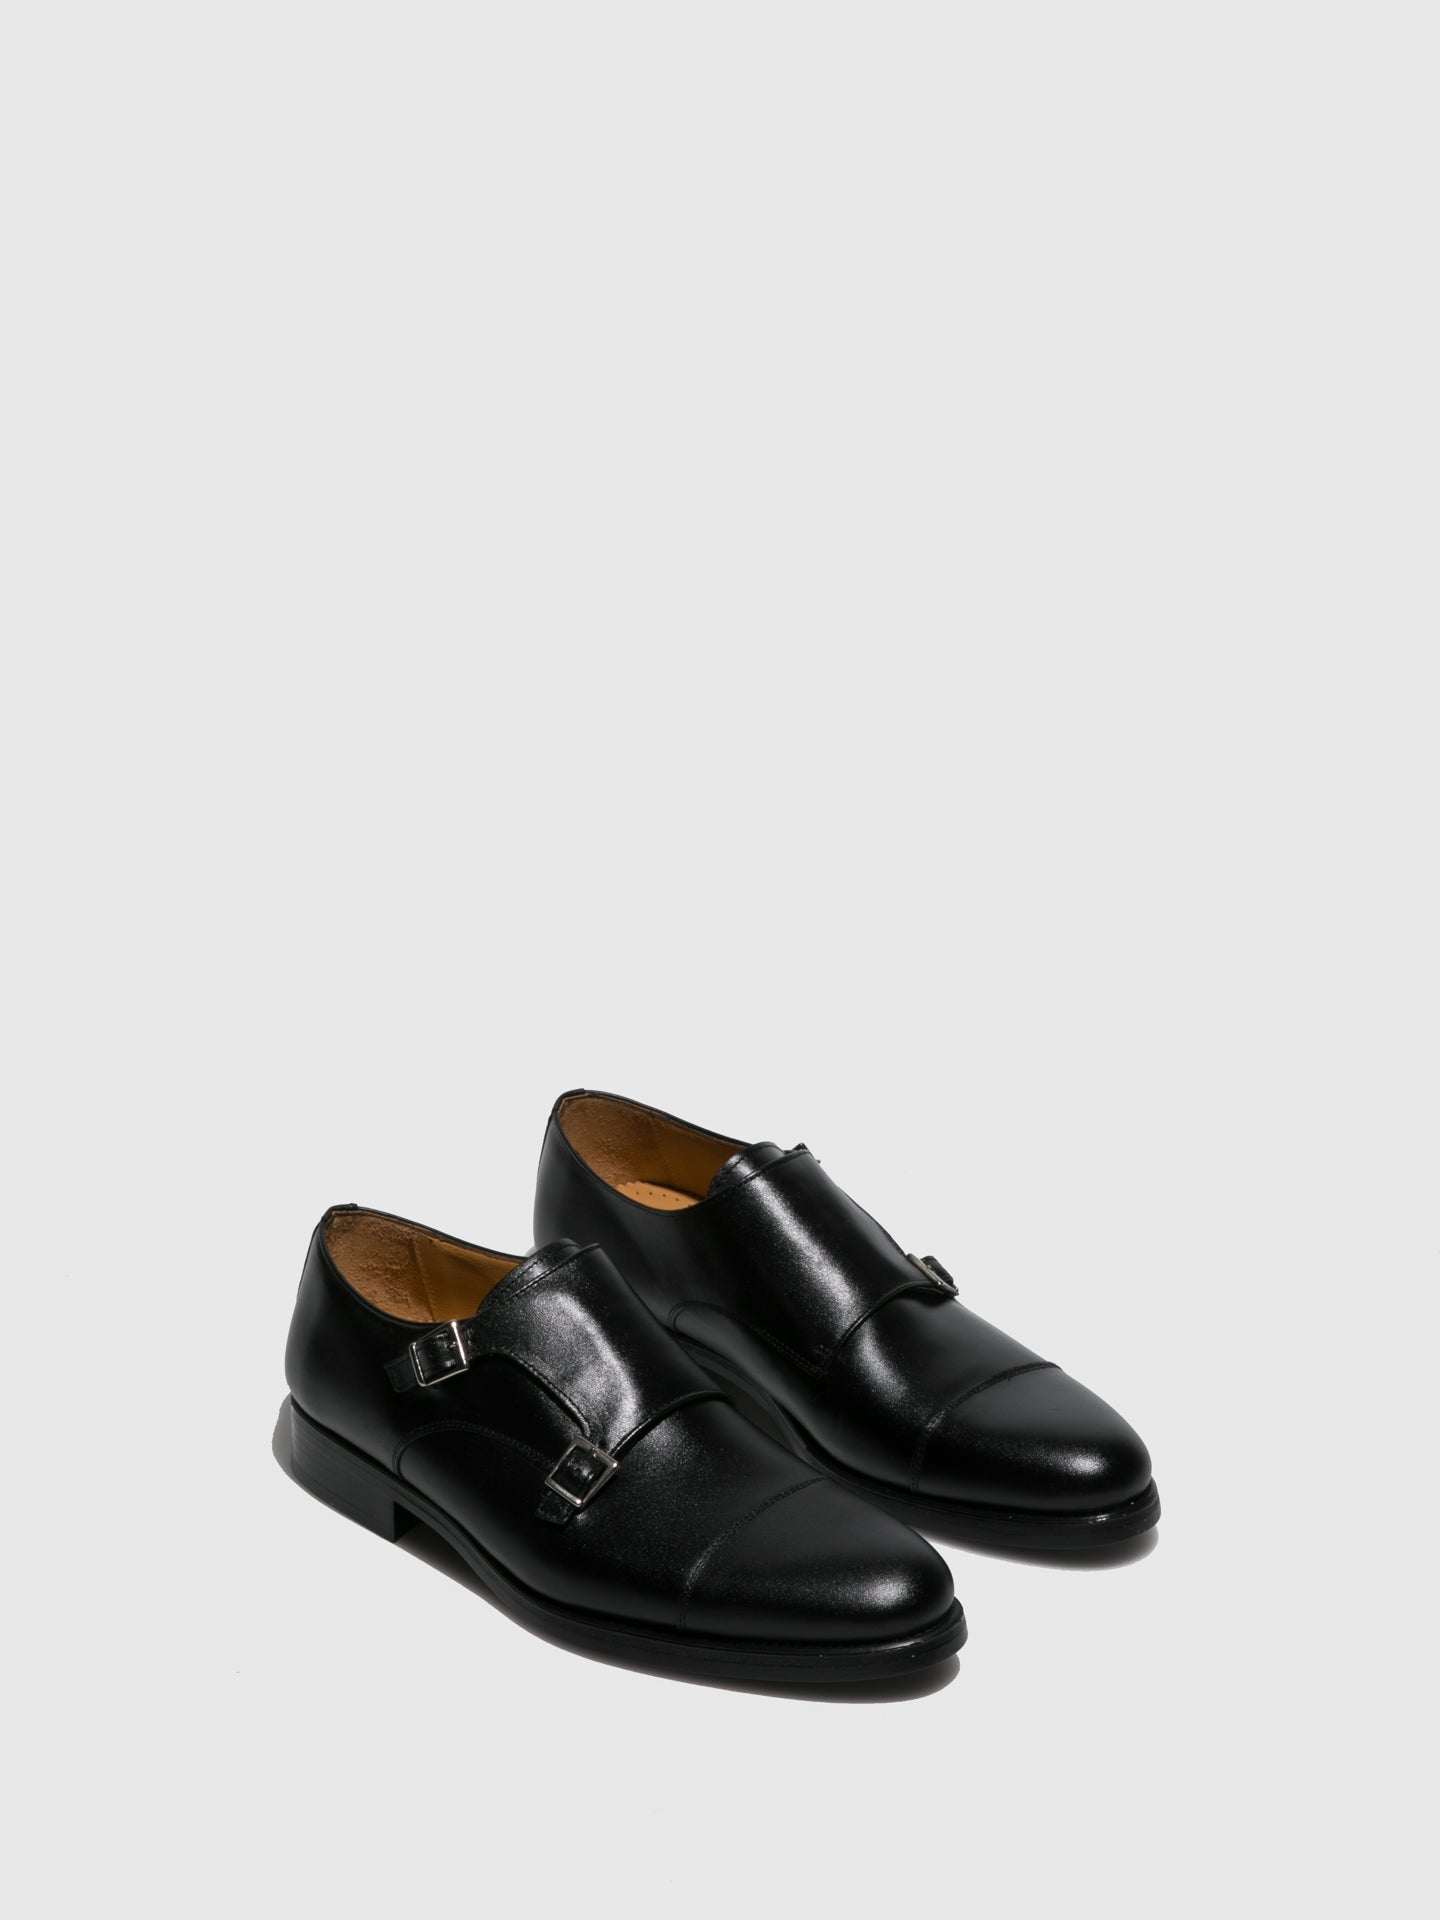 Sotoalto Black Lace-up Shoes